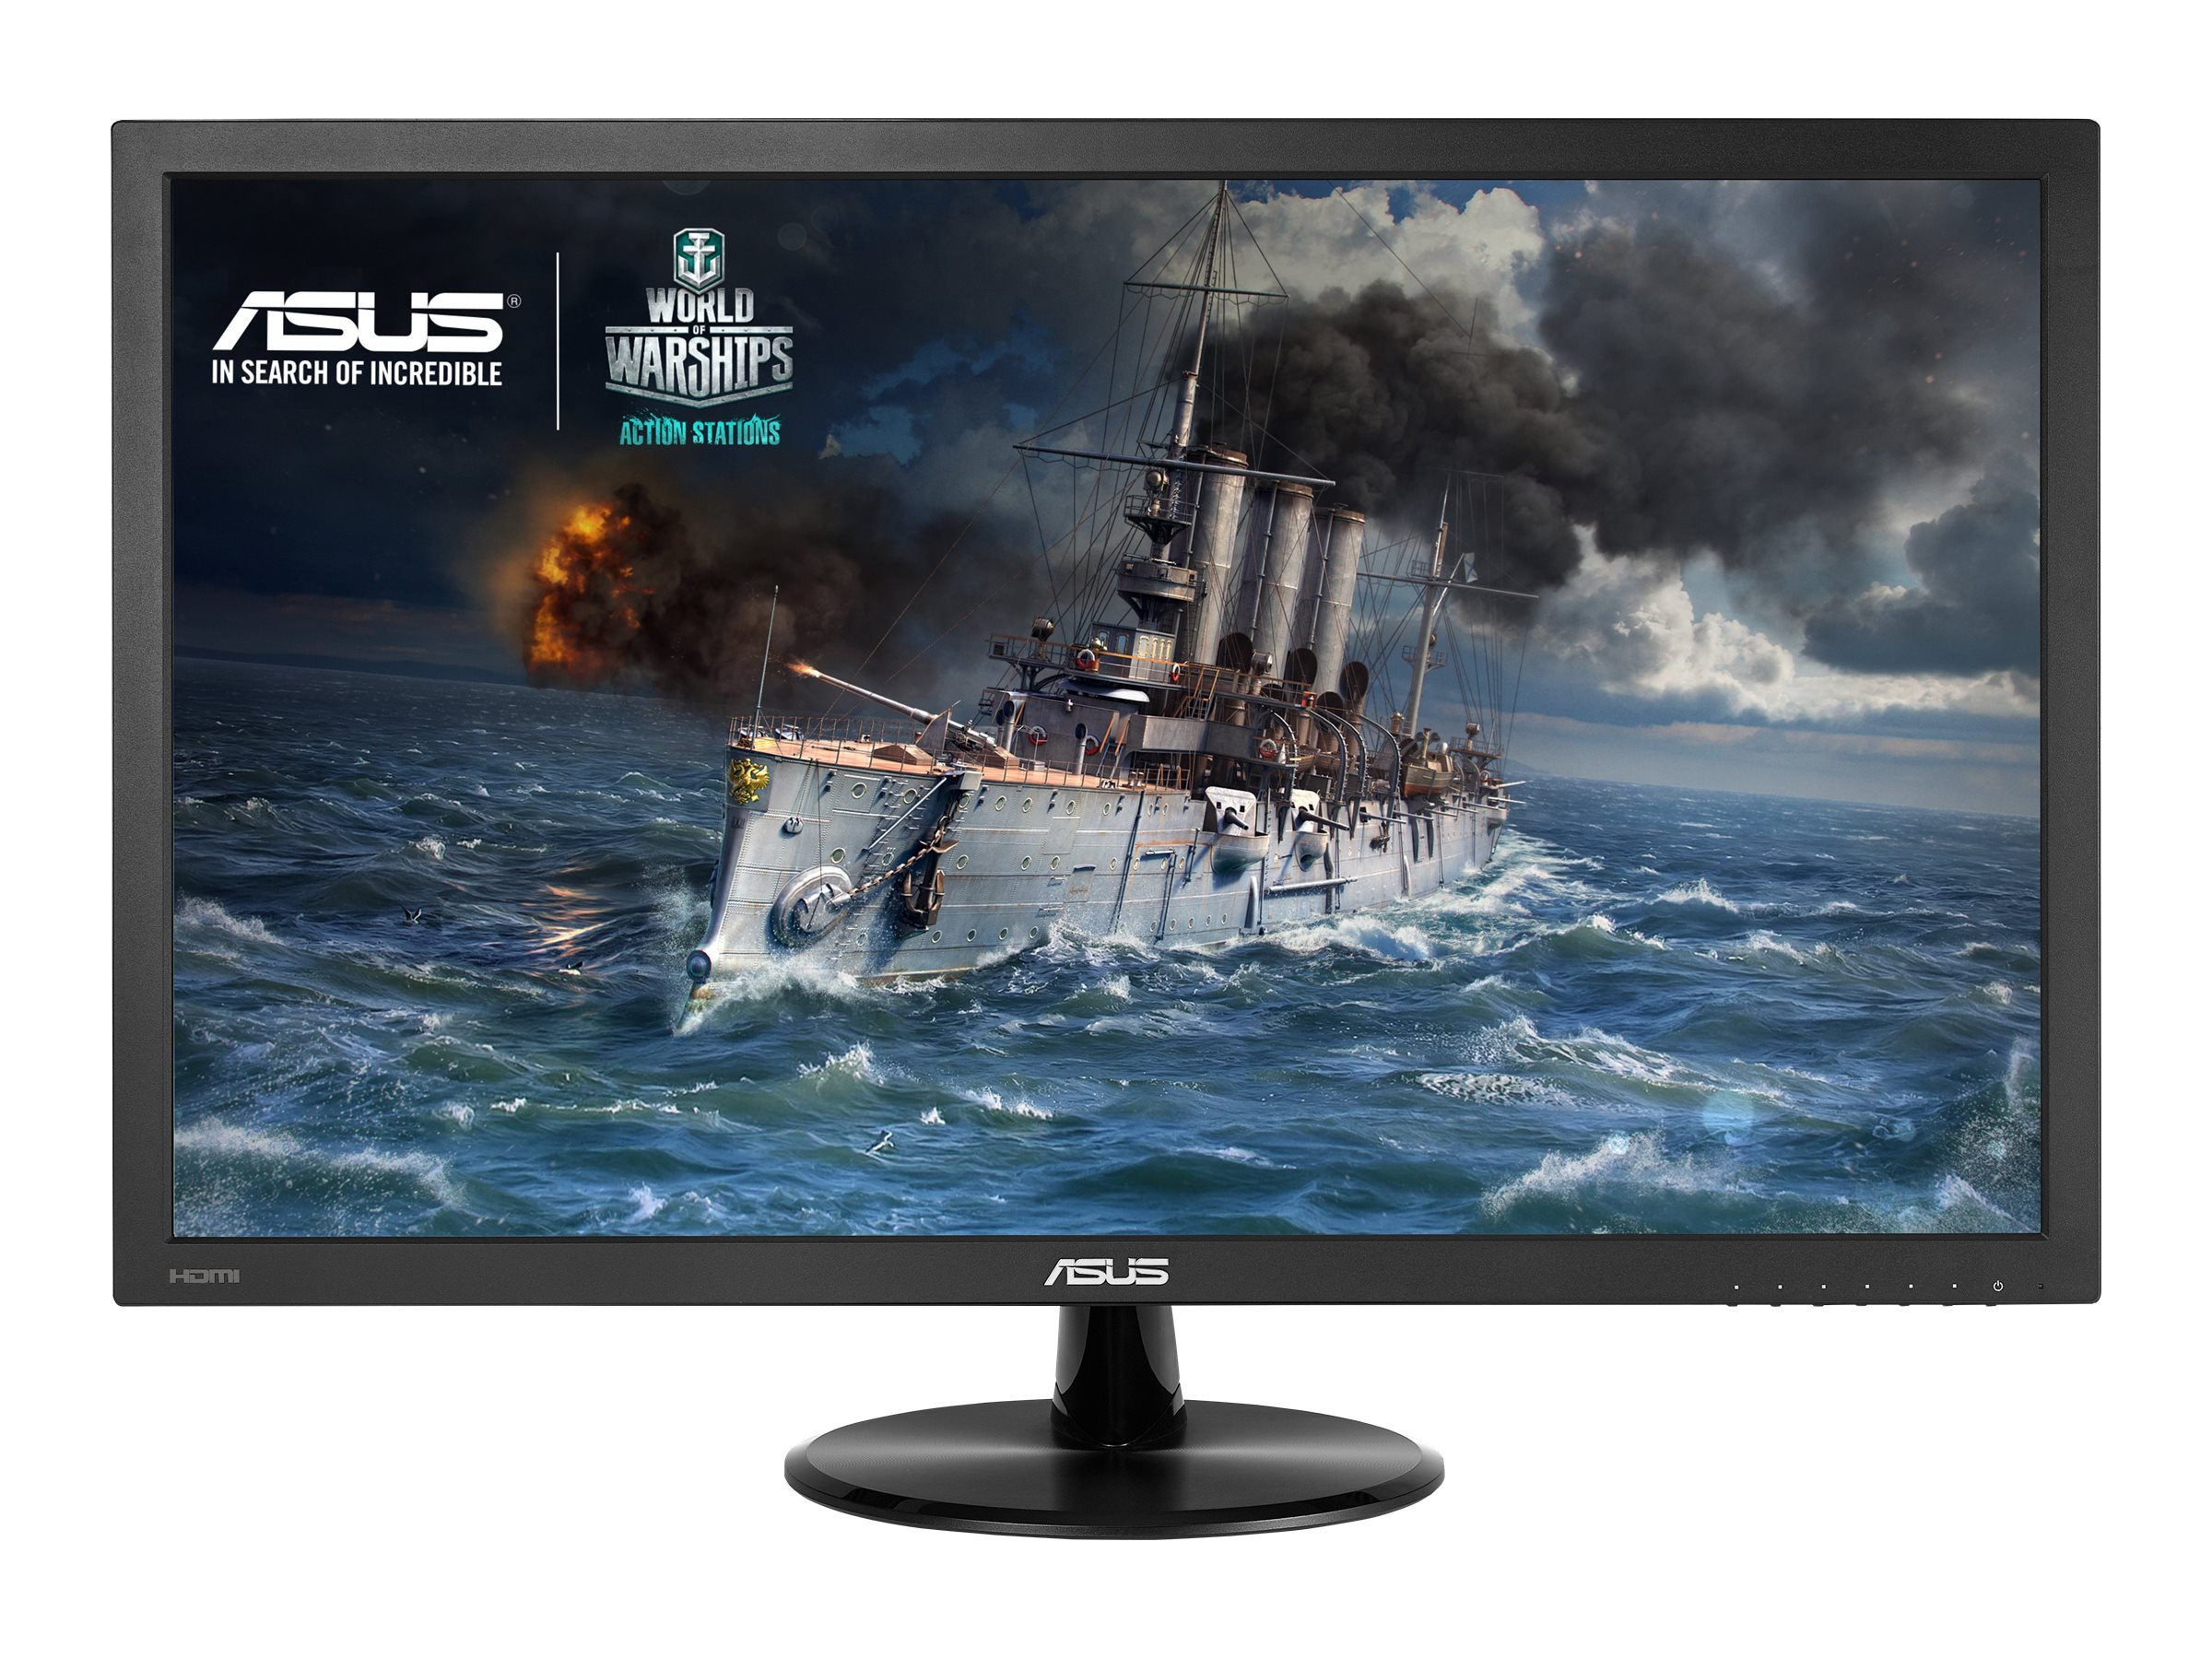 Asus 27 VP278H-P Full HD LED-LCD Monitor, Black